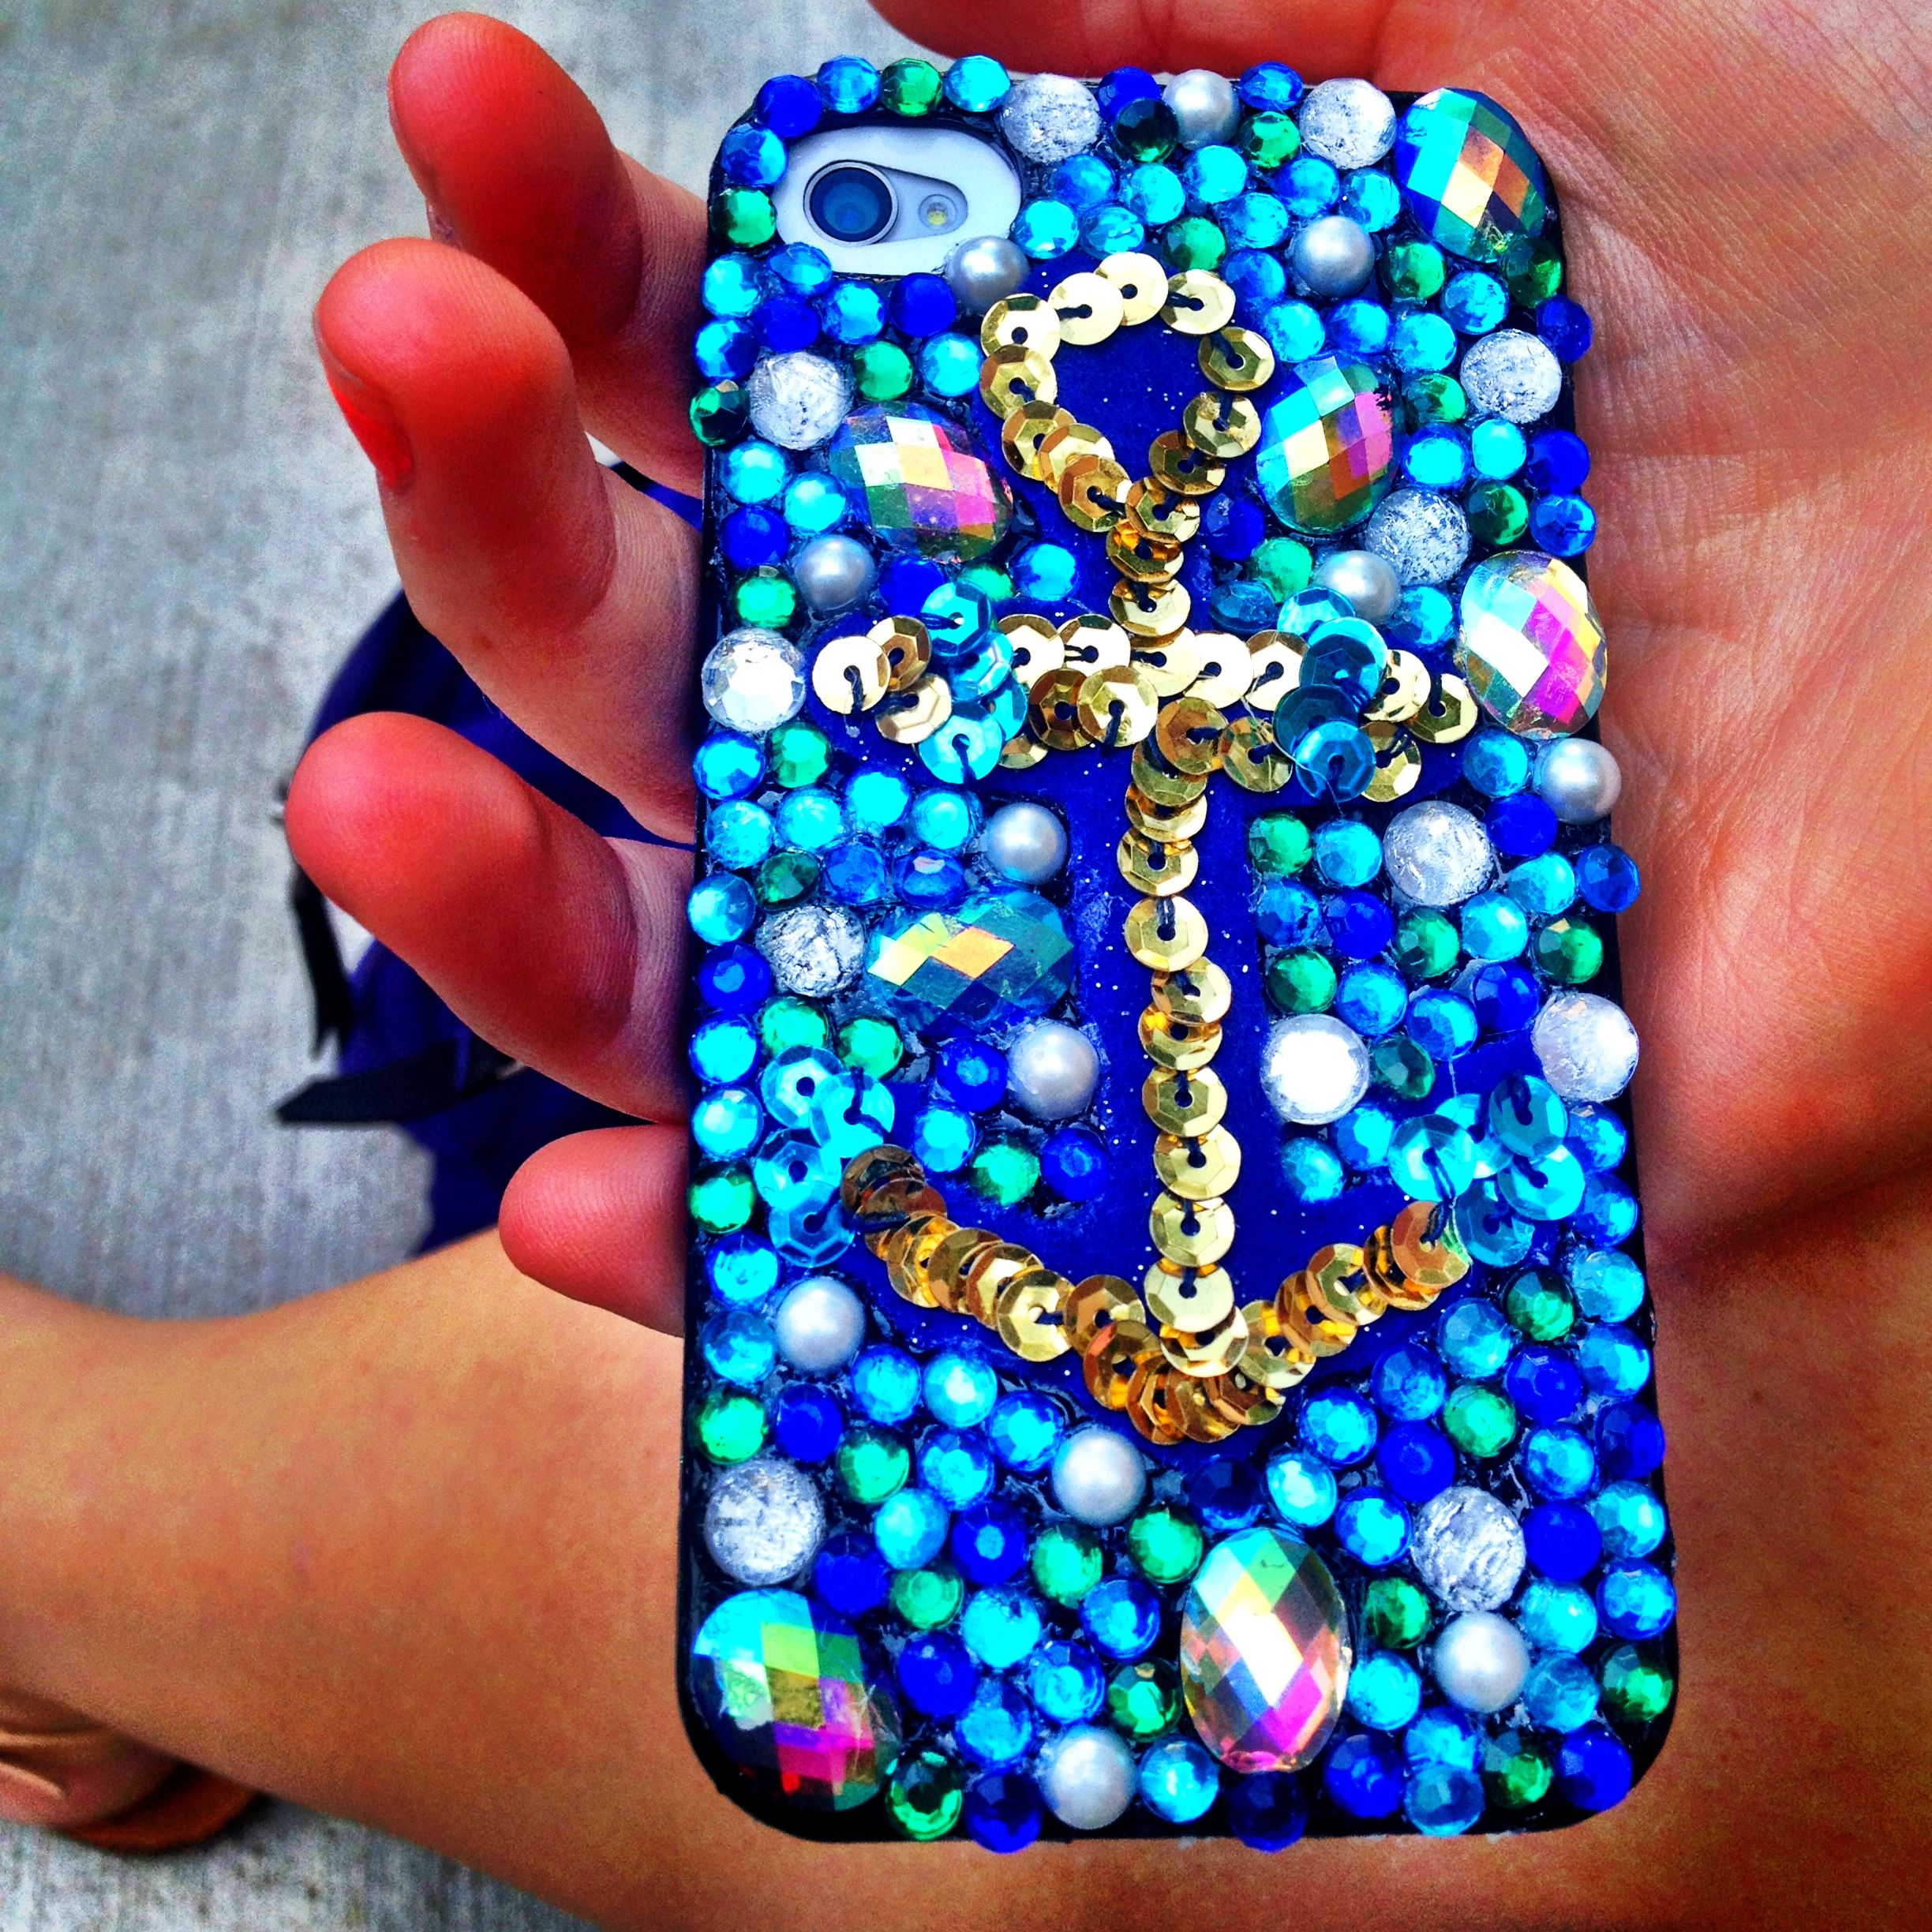 Homemade phone case crafts and things to do pinterest for Homemade phone case